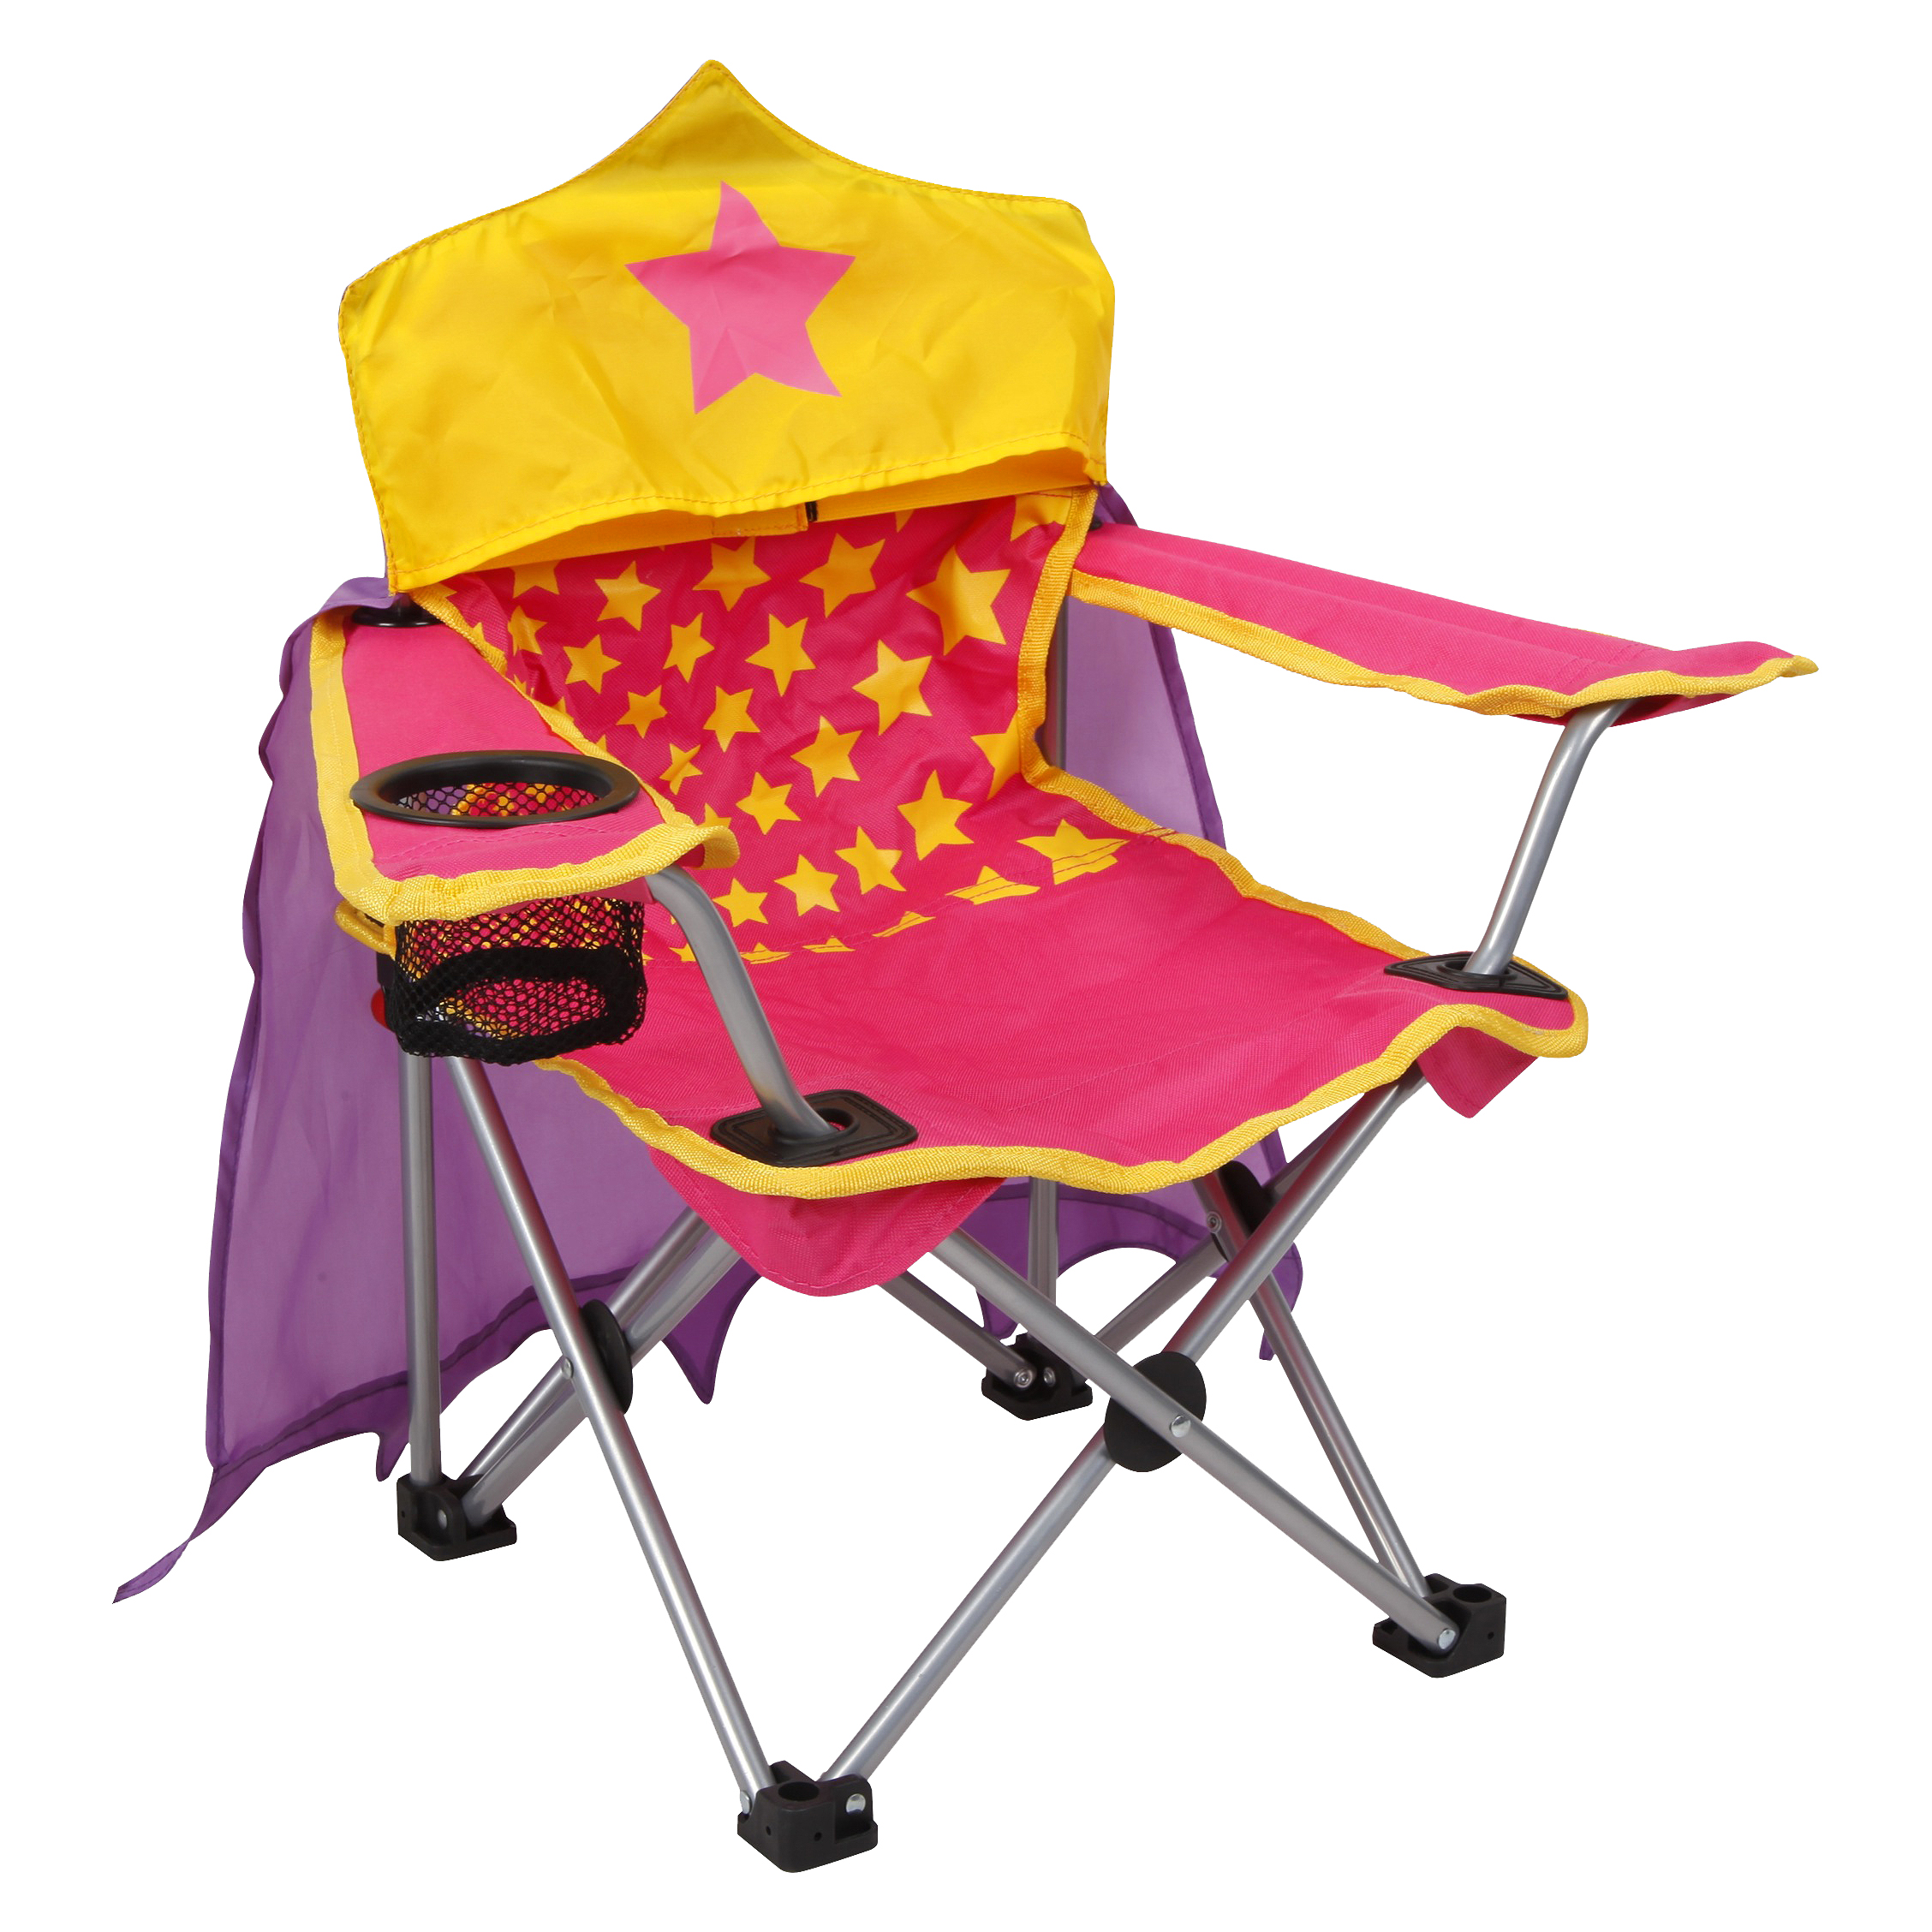 Kids Folding Chair Target And Warner Bros Consumer Products Team Up To